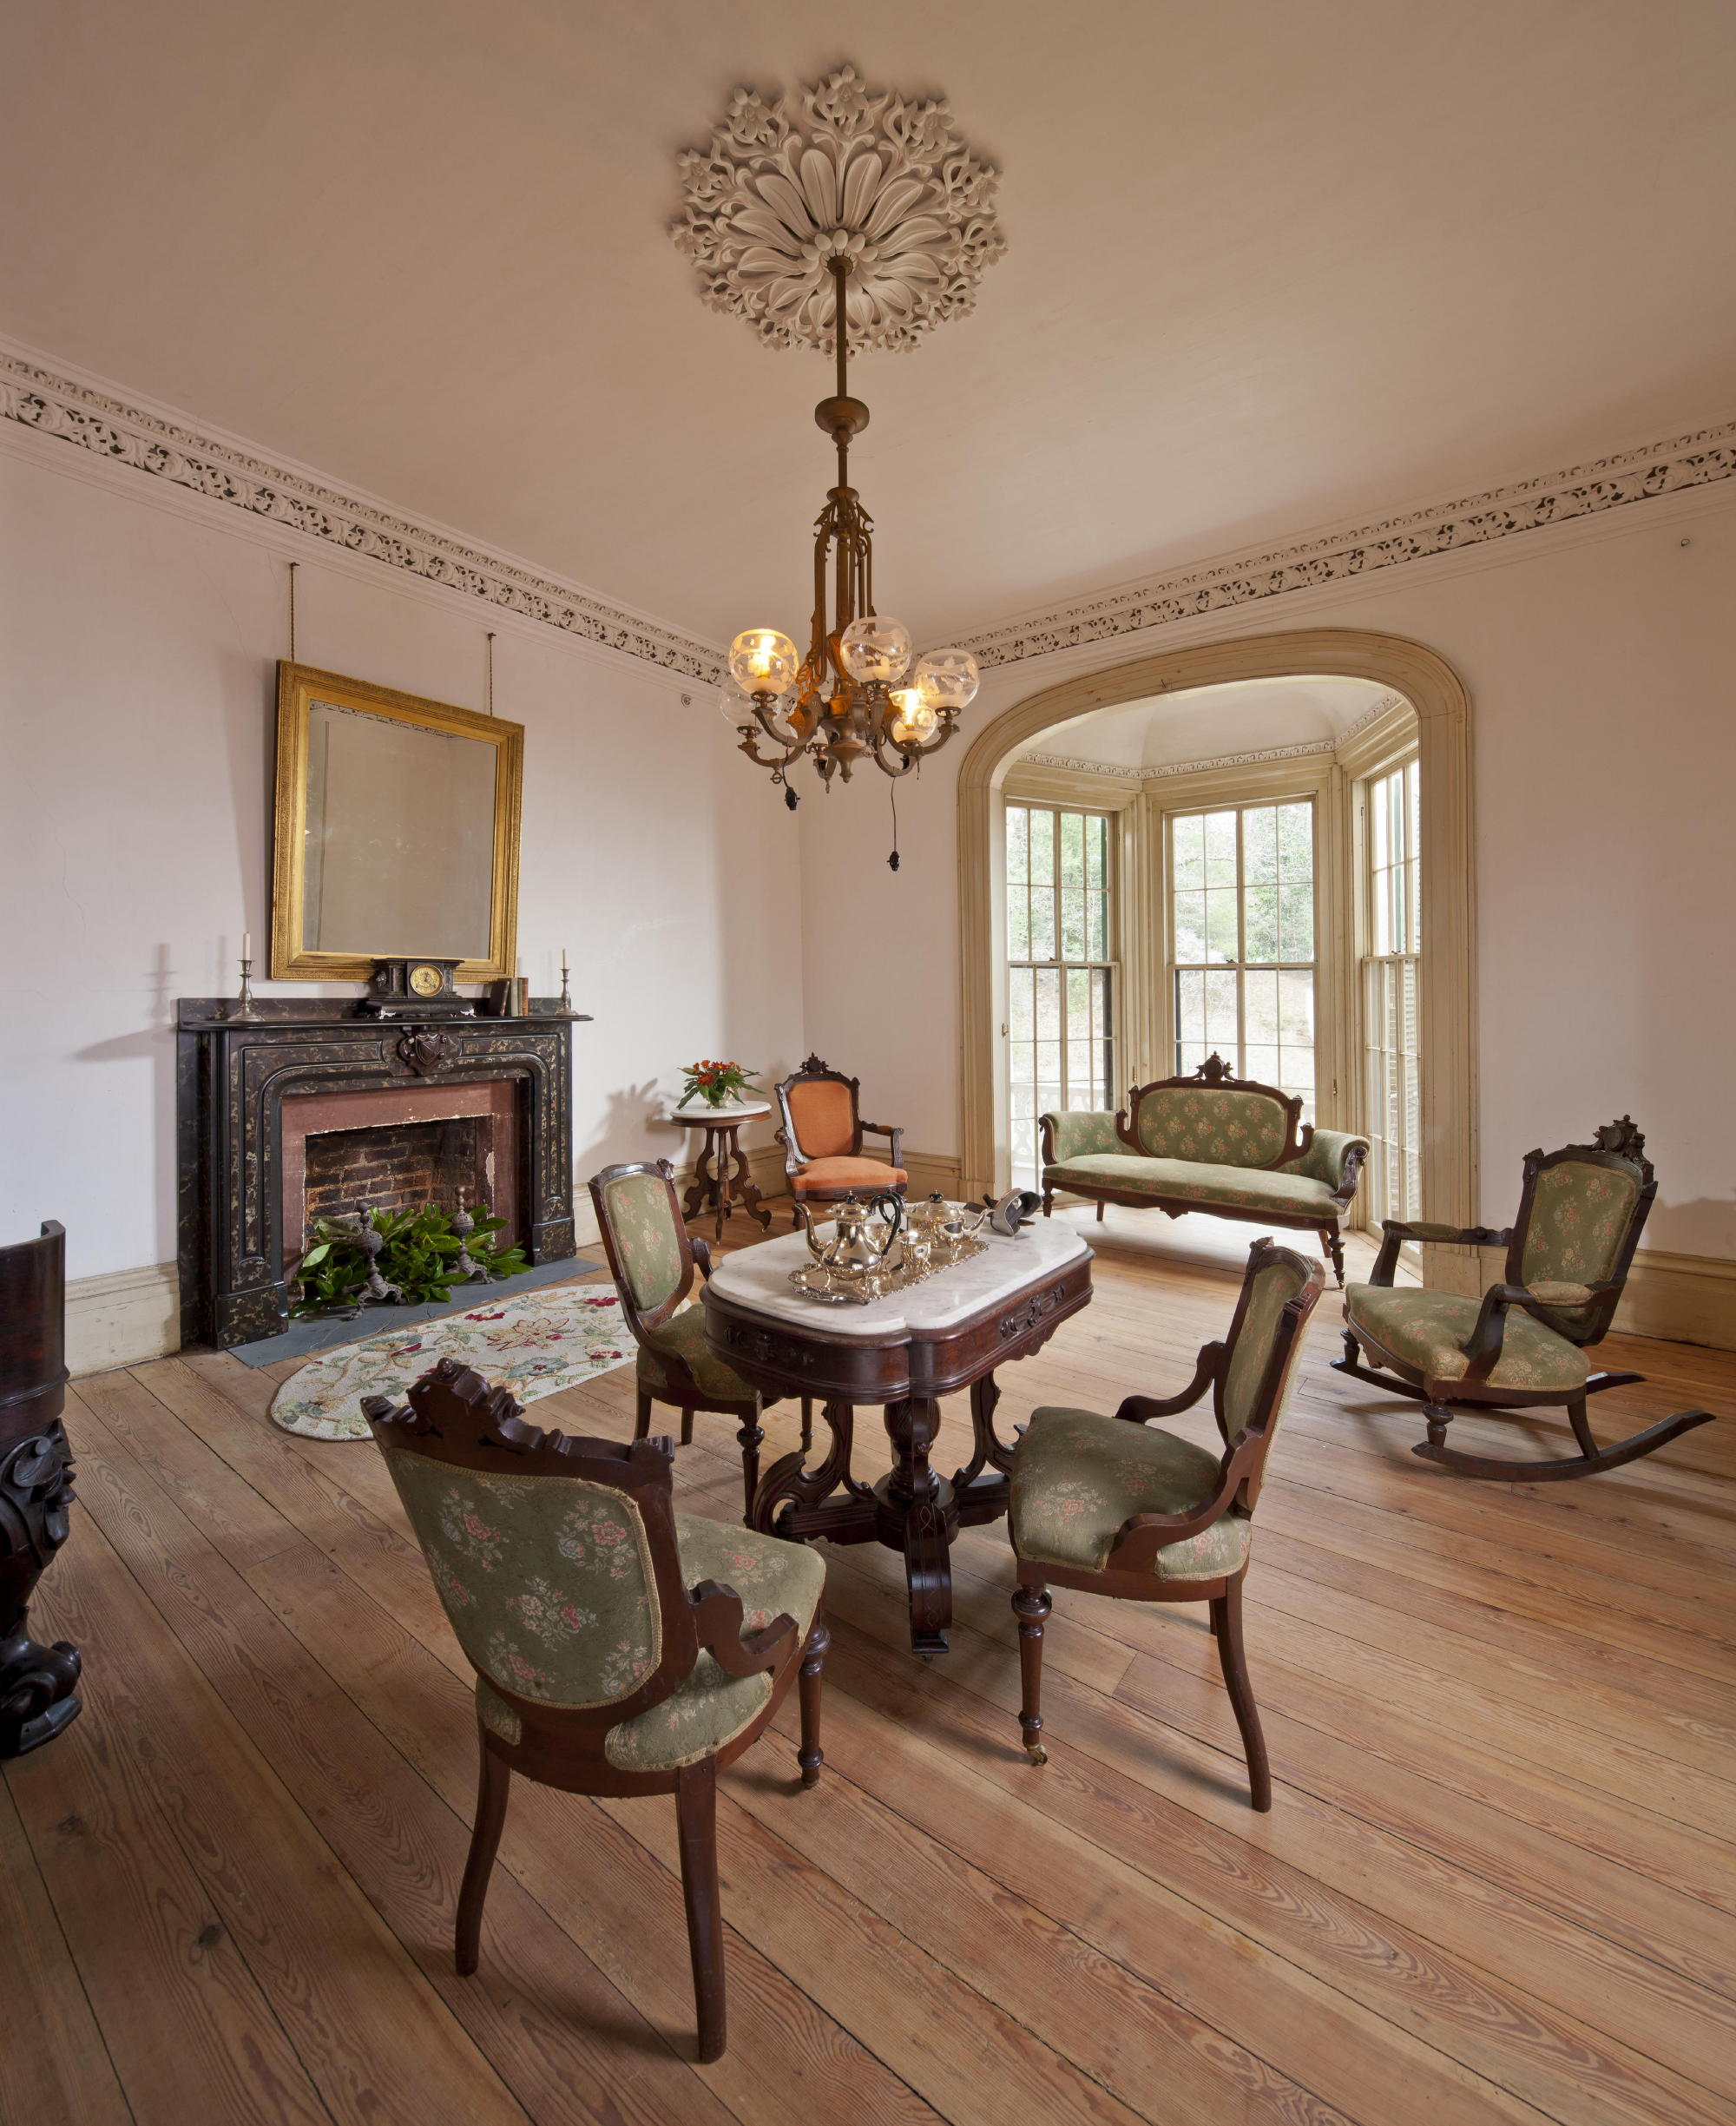 The farmhouse parlor at Hardman Farm. Photo: c Jonathan Hillyer / Atlanta